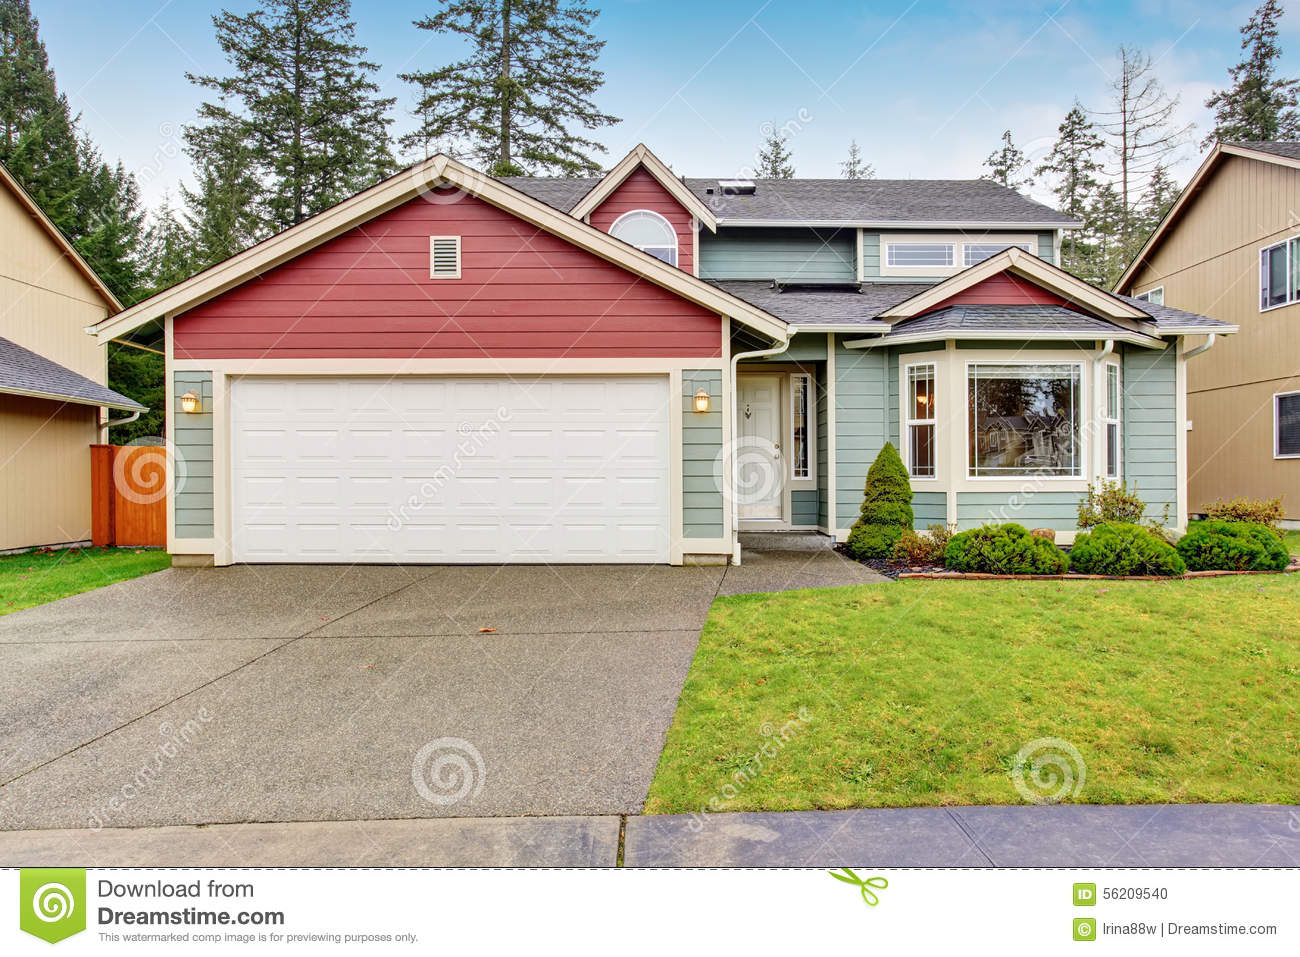 Classic house with garage and driveway stock photo for Classic house fronts